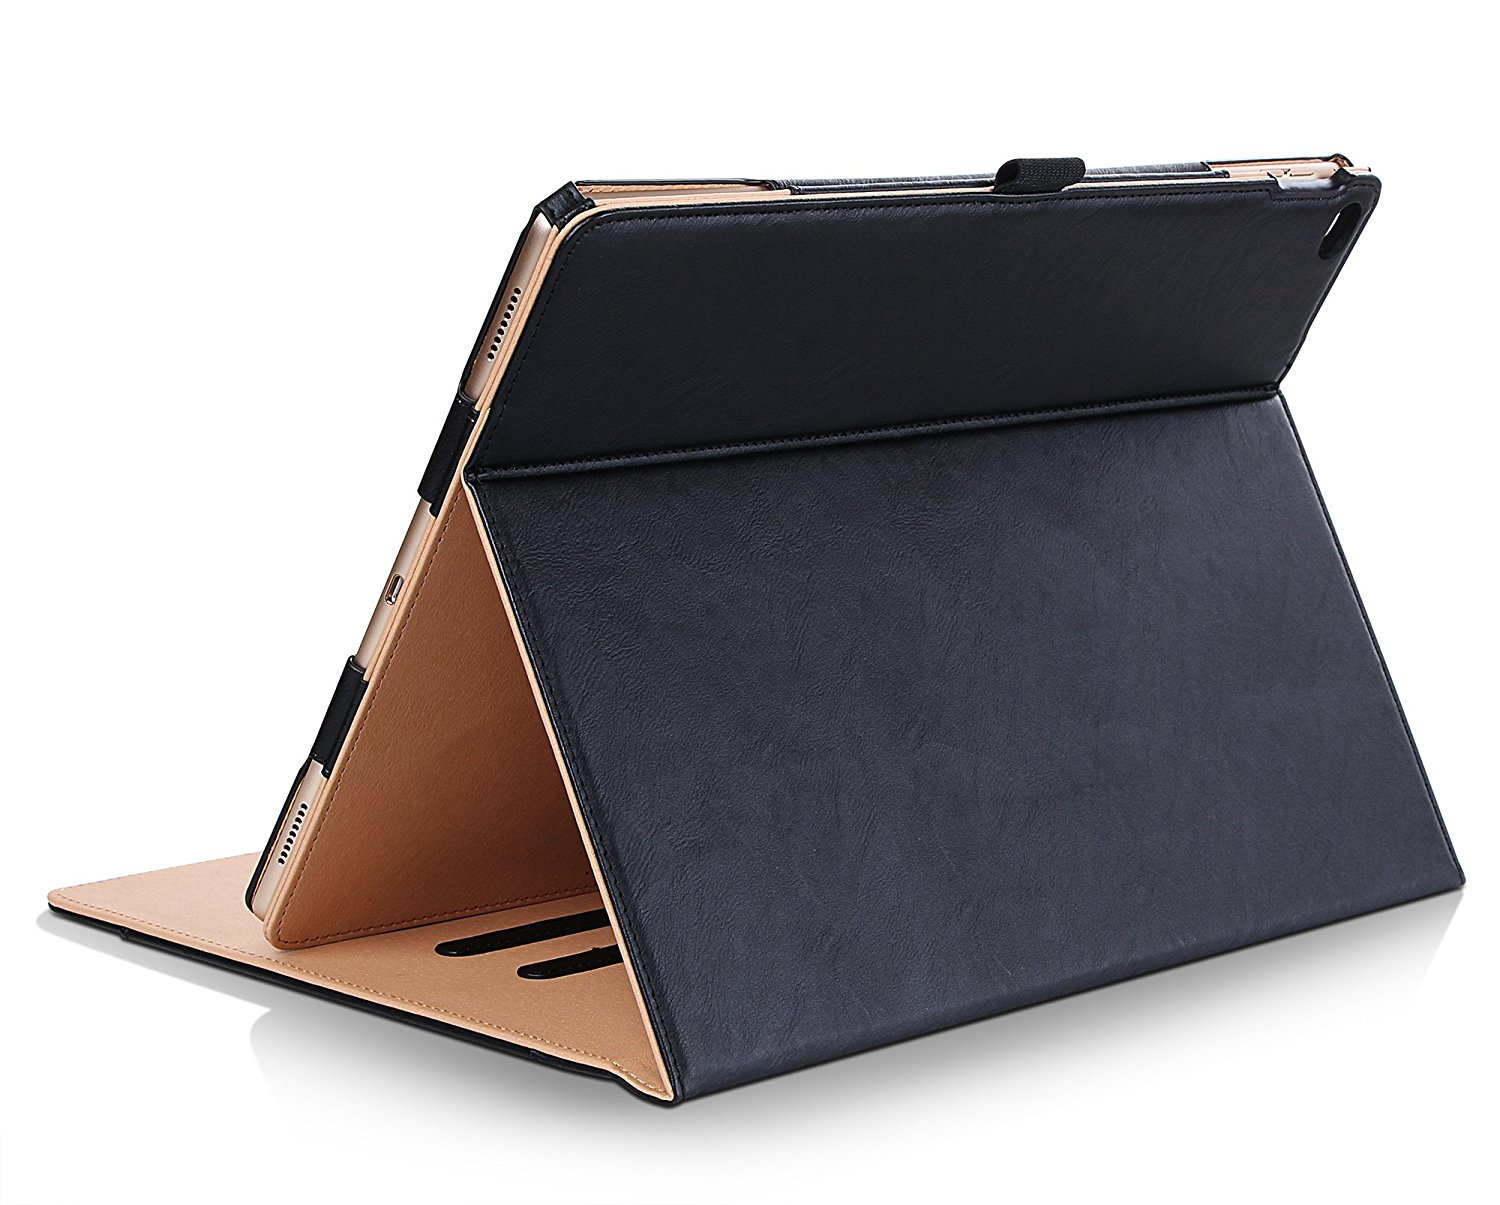 ProCase Leather Stand Folio Case Cover for 2015 Apple iPad Pro